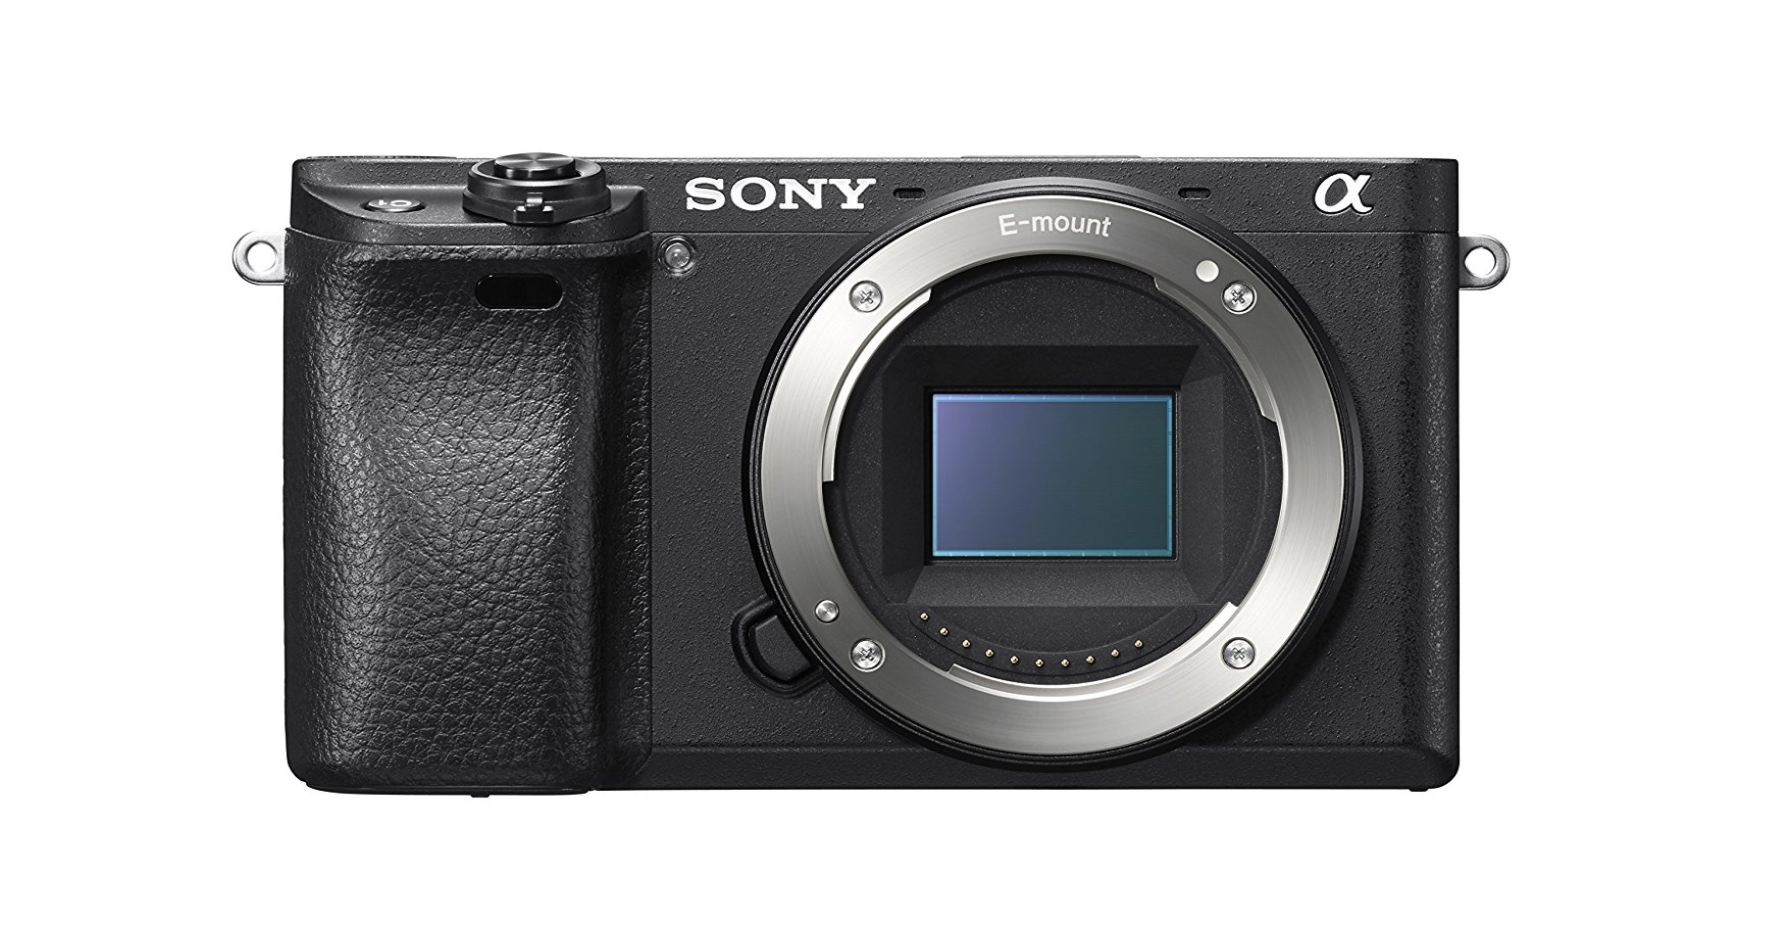 Sony α6300 - e-mount camera with APS-C Senor